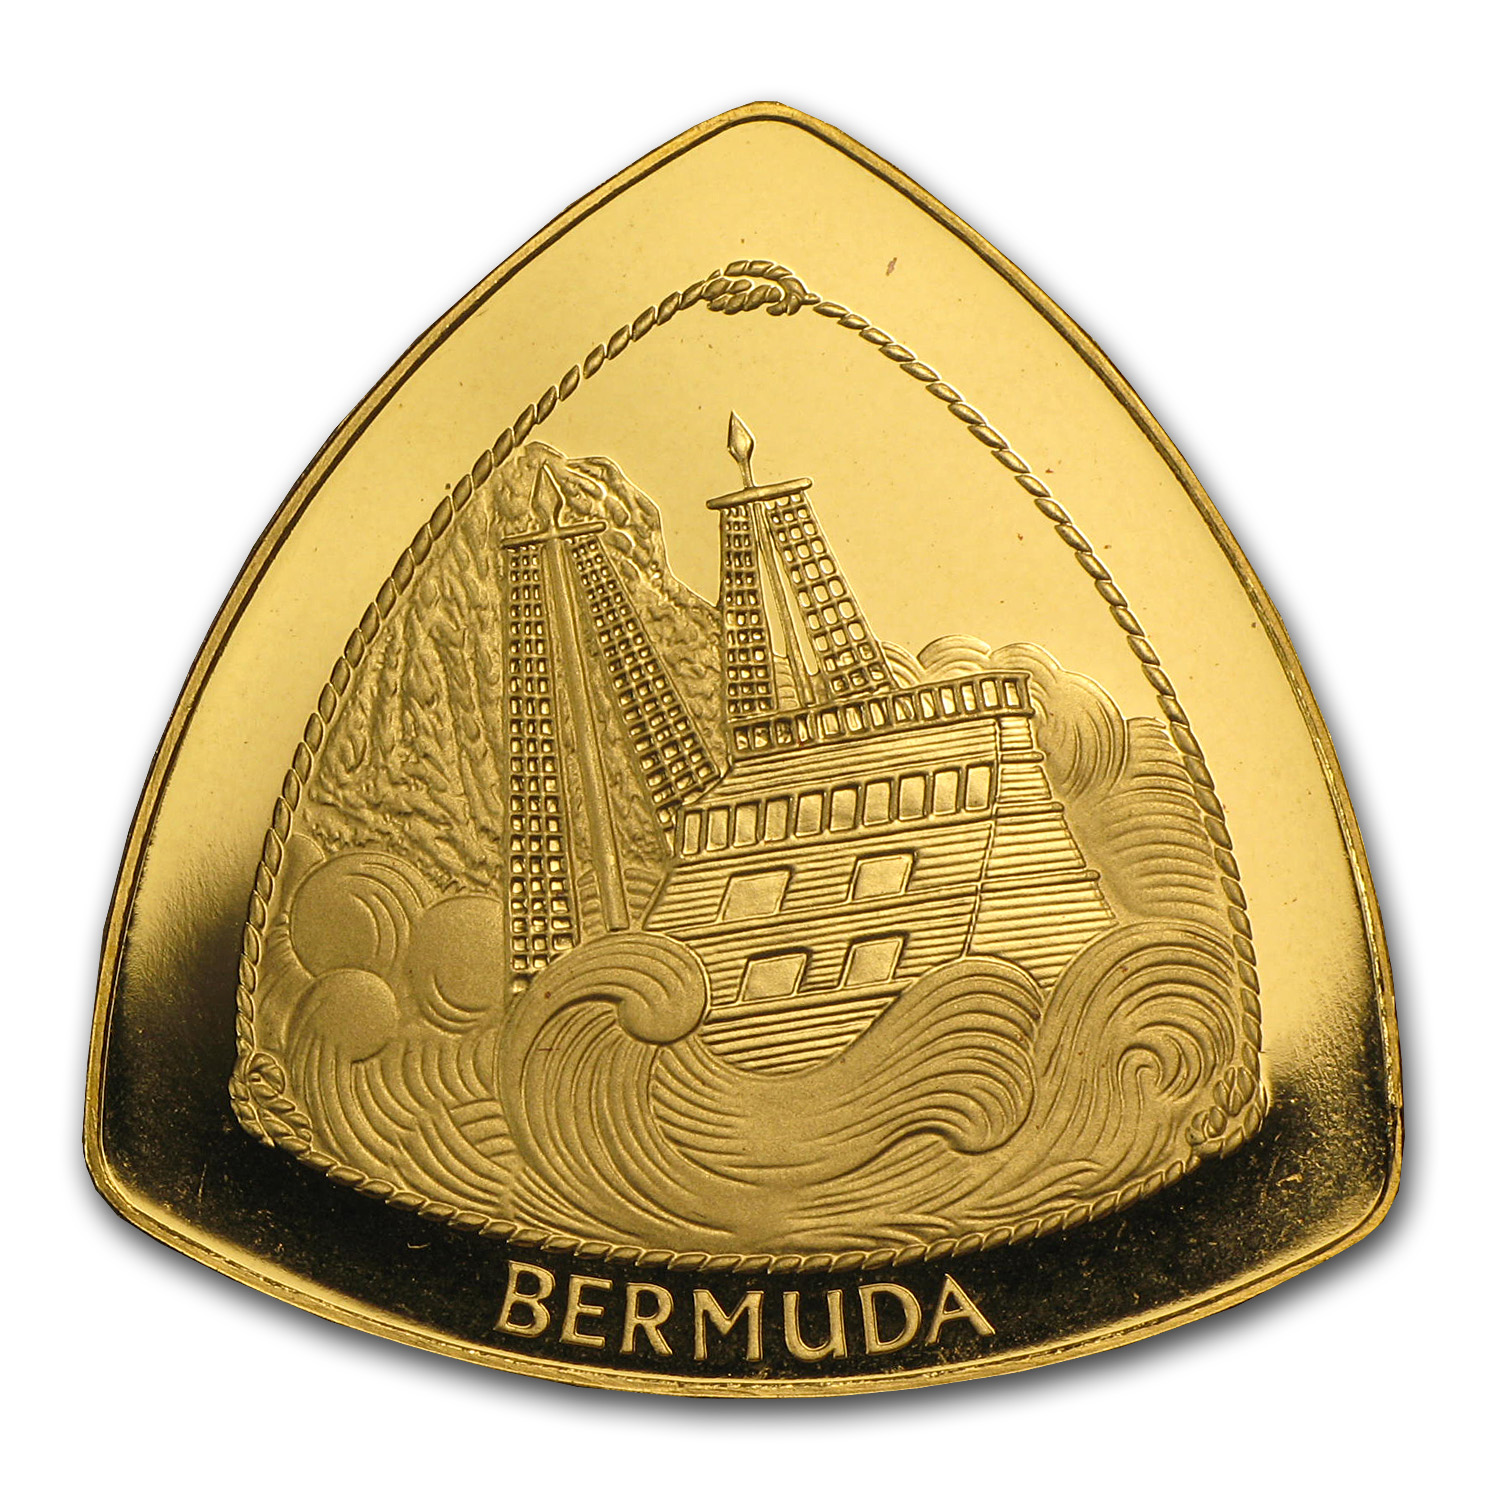 Bermuda 1997 Triangle $30 1/2 oz. Gold Coin. (Proof)